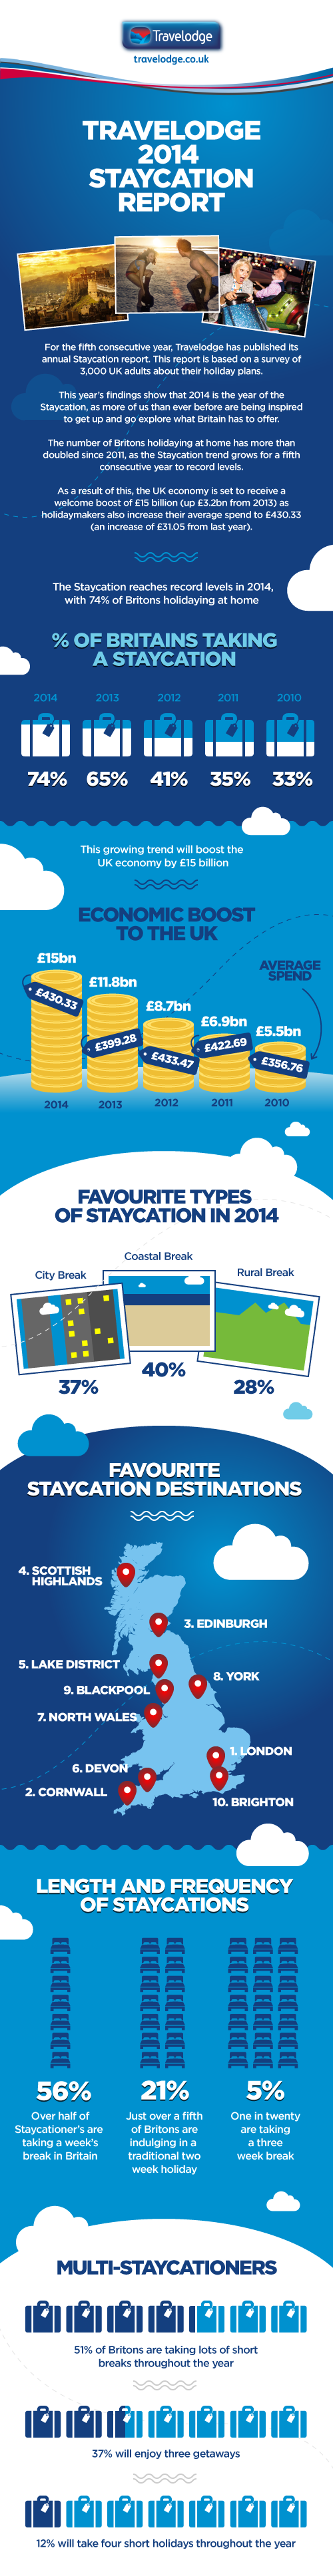 staycations travelodge infographic